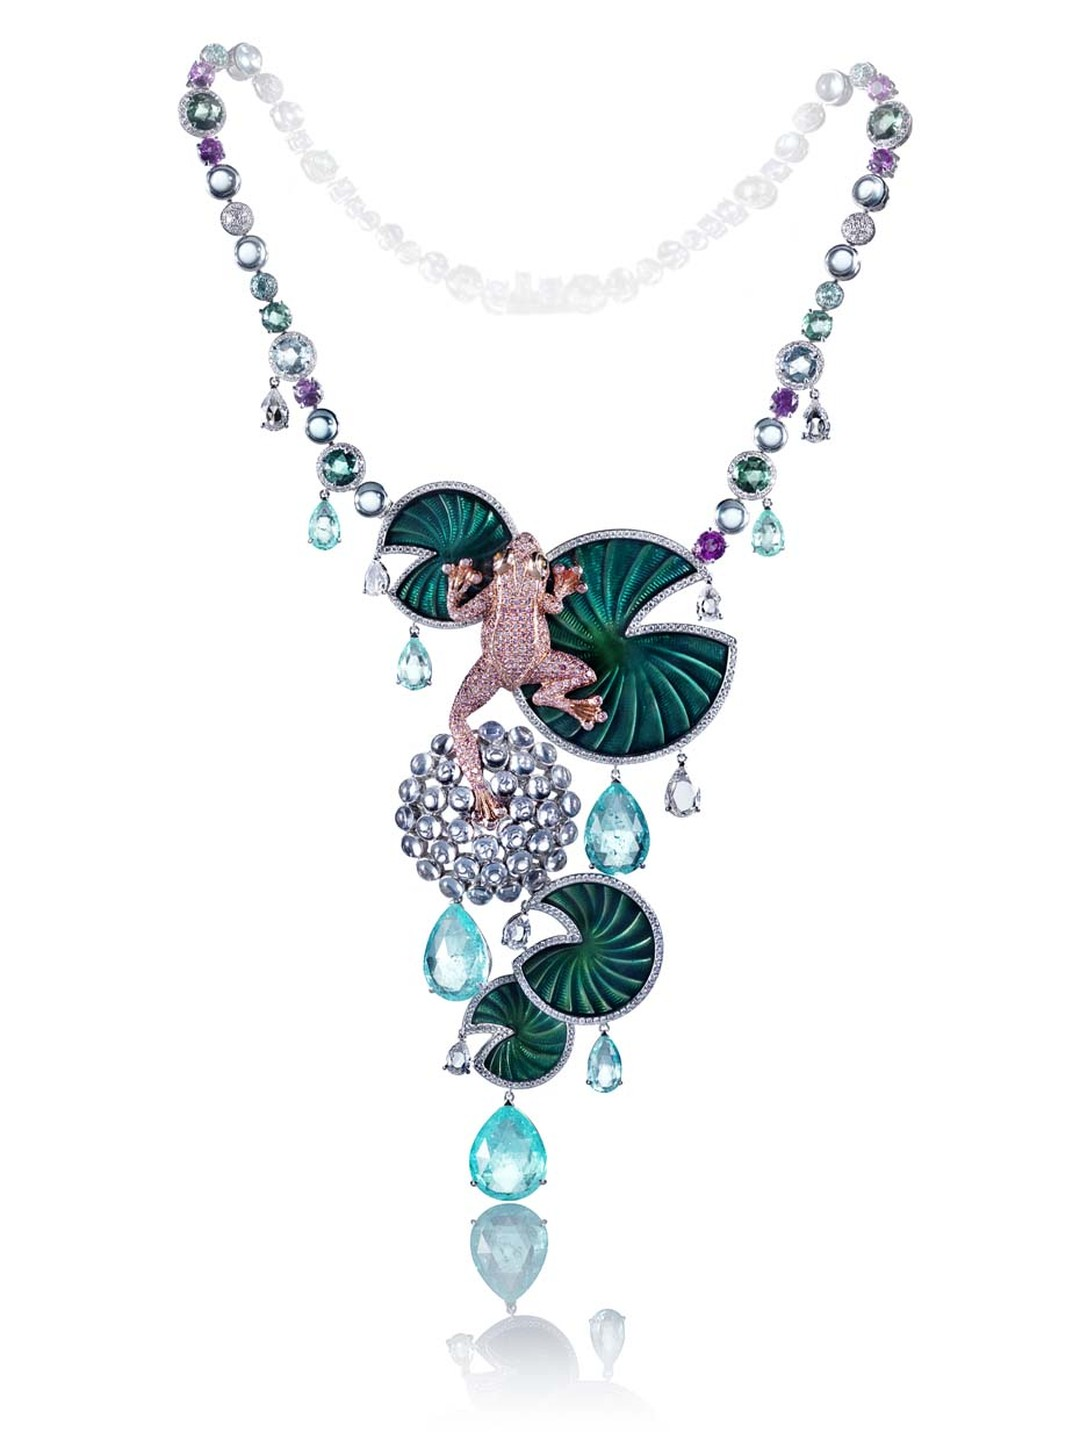 This impressive Chopard Frog necklace, from the Animal Kingdom collection, is set with white, pink and brown diamonds, Paraiba tourmalines, aquamarine cabochons, aquamarines, tourmalines and pink sapphires, pastel blue sapphire cabochons and rose-cut gree